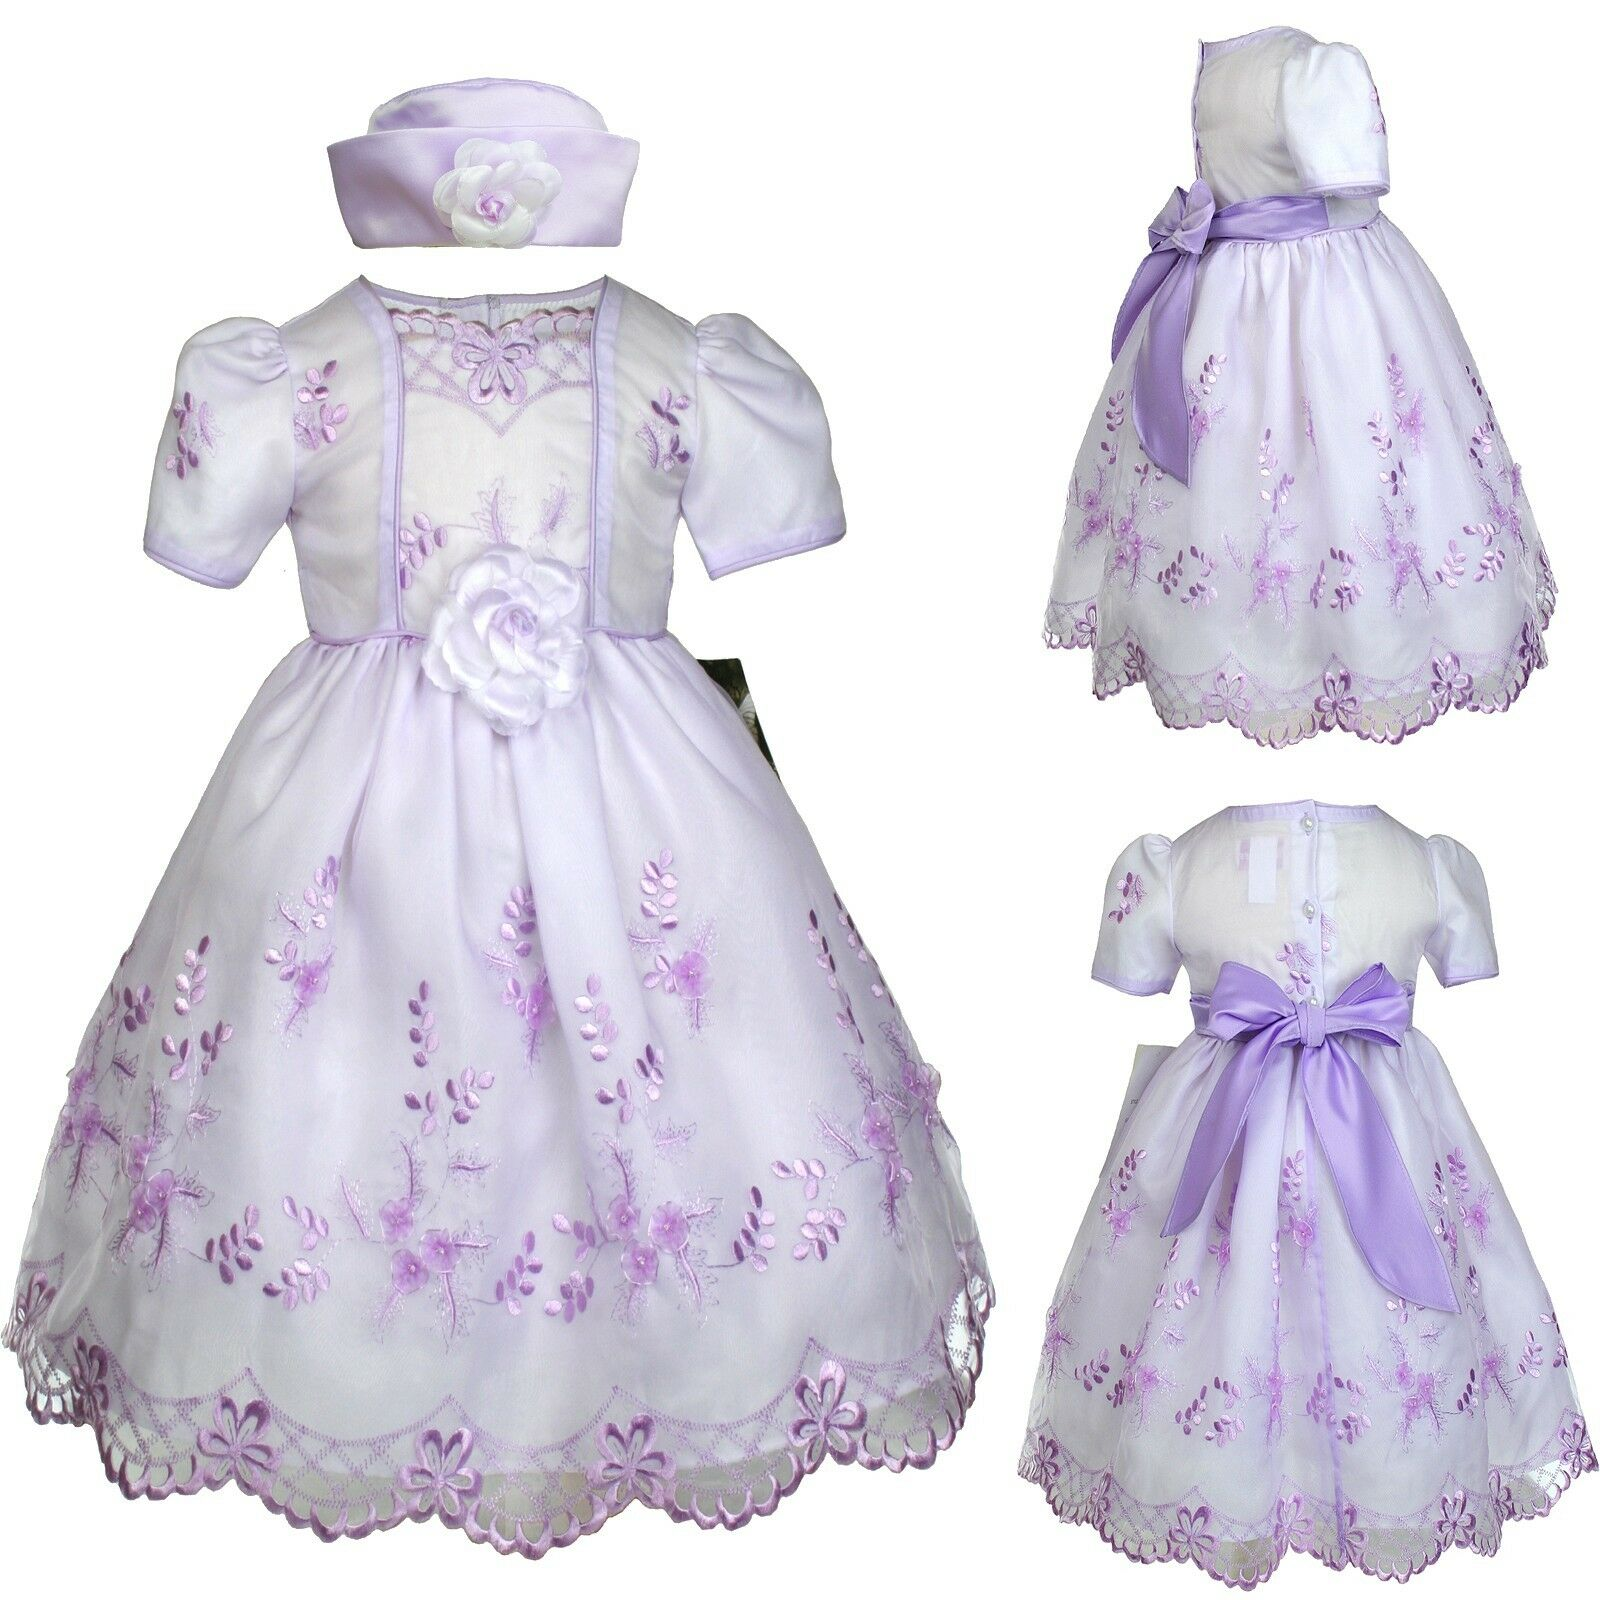 Baby Girl Toddler Lavender Dress Wedding Prom Easter Formal Party sz: S M L XL